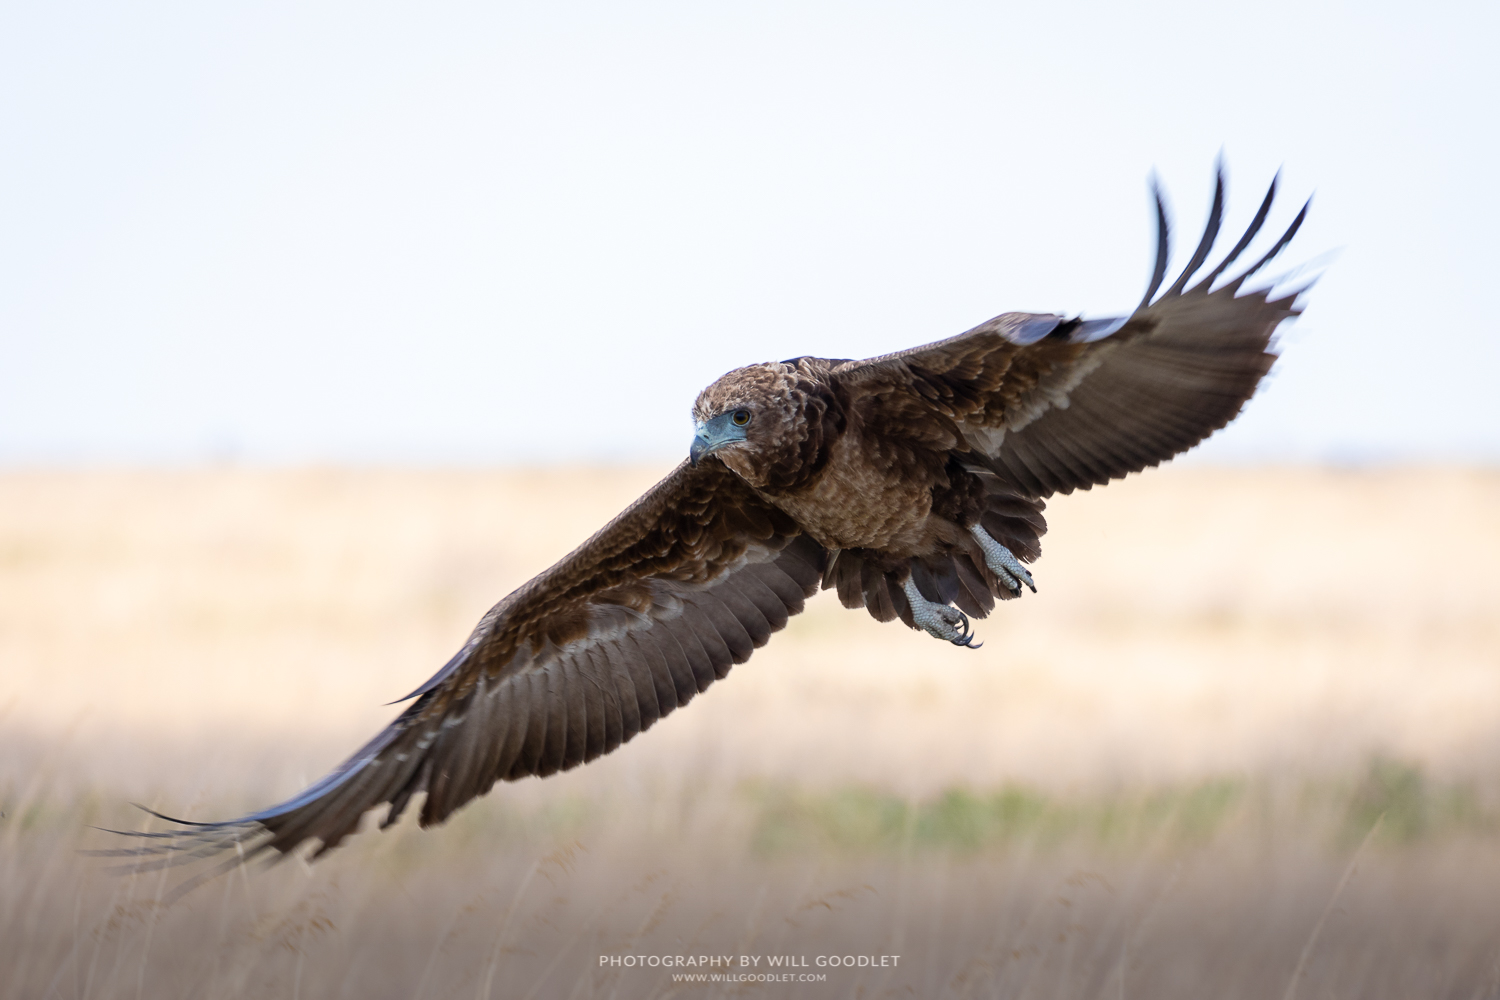 An immature Bateleur takes flight.